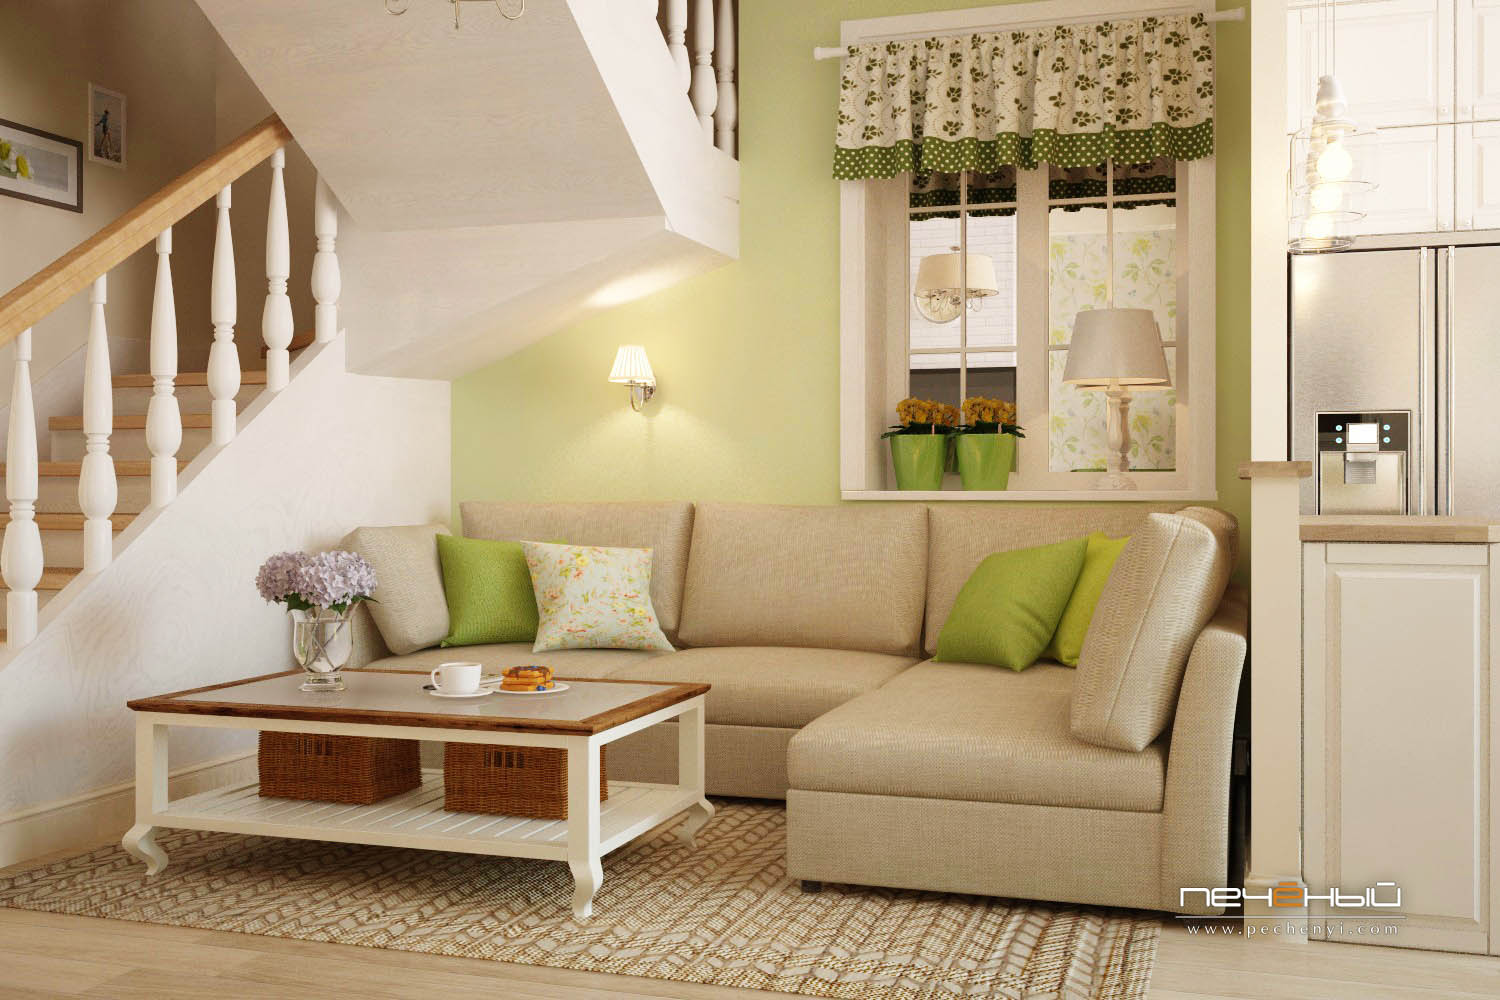 There's a lase window here and neutral upholstery and rustic details make the space cozier